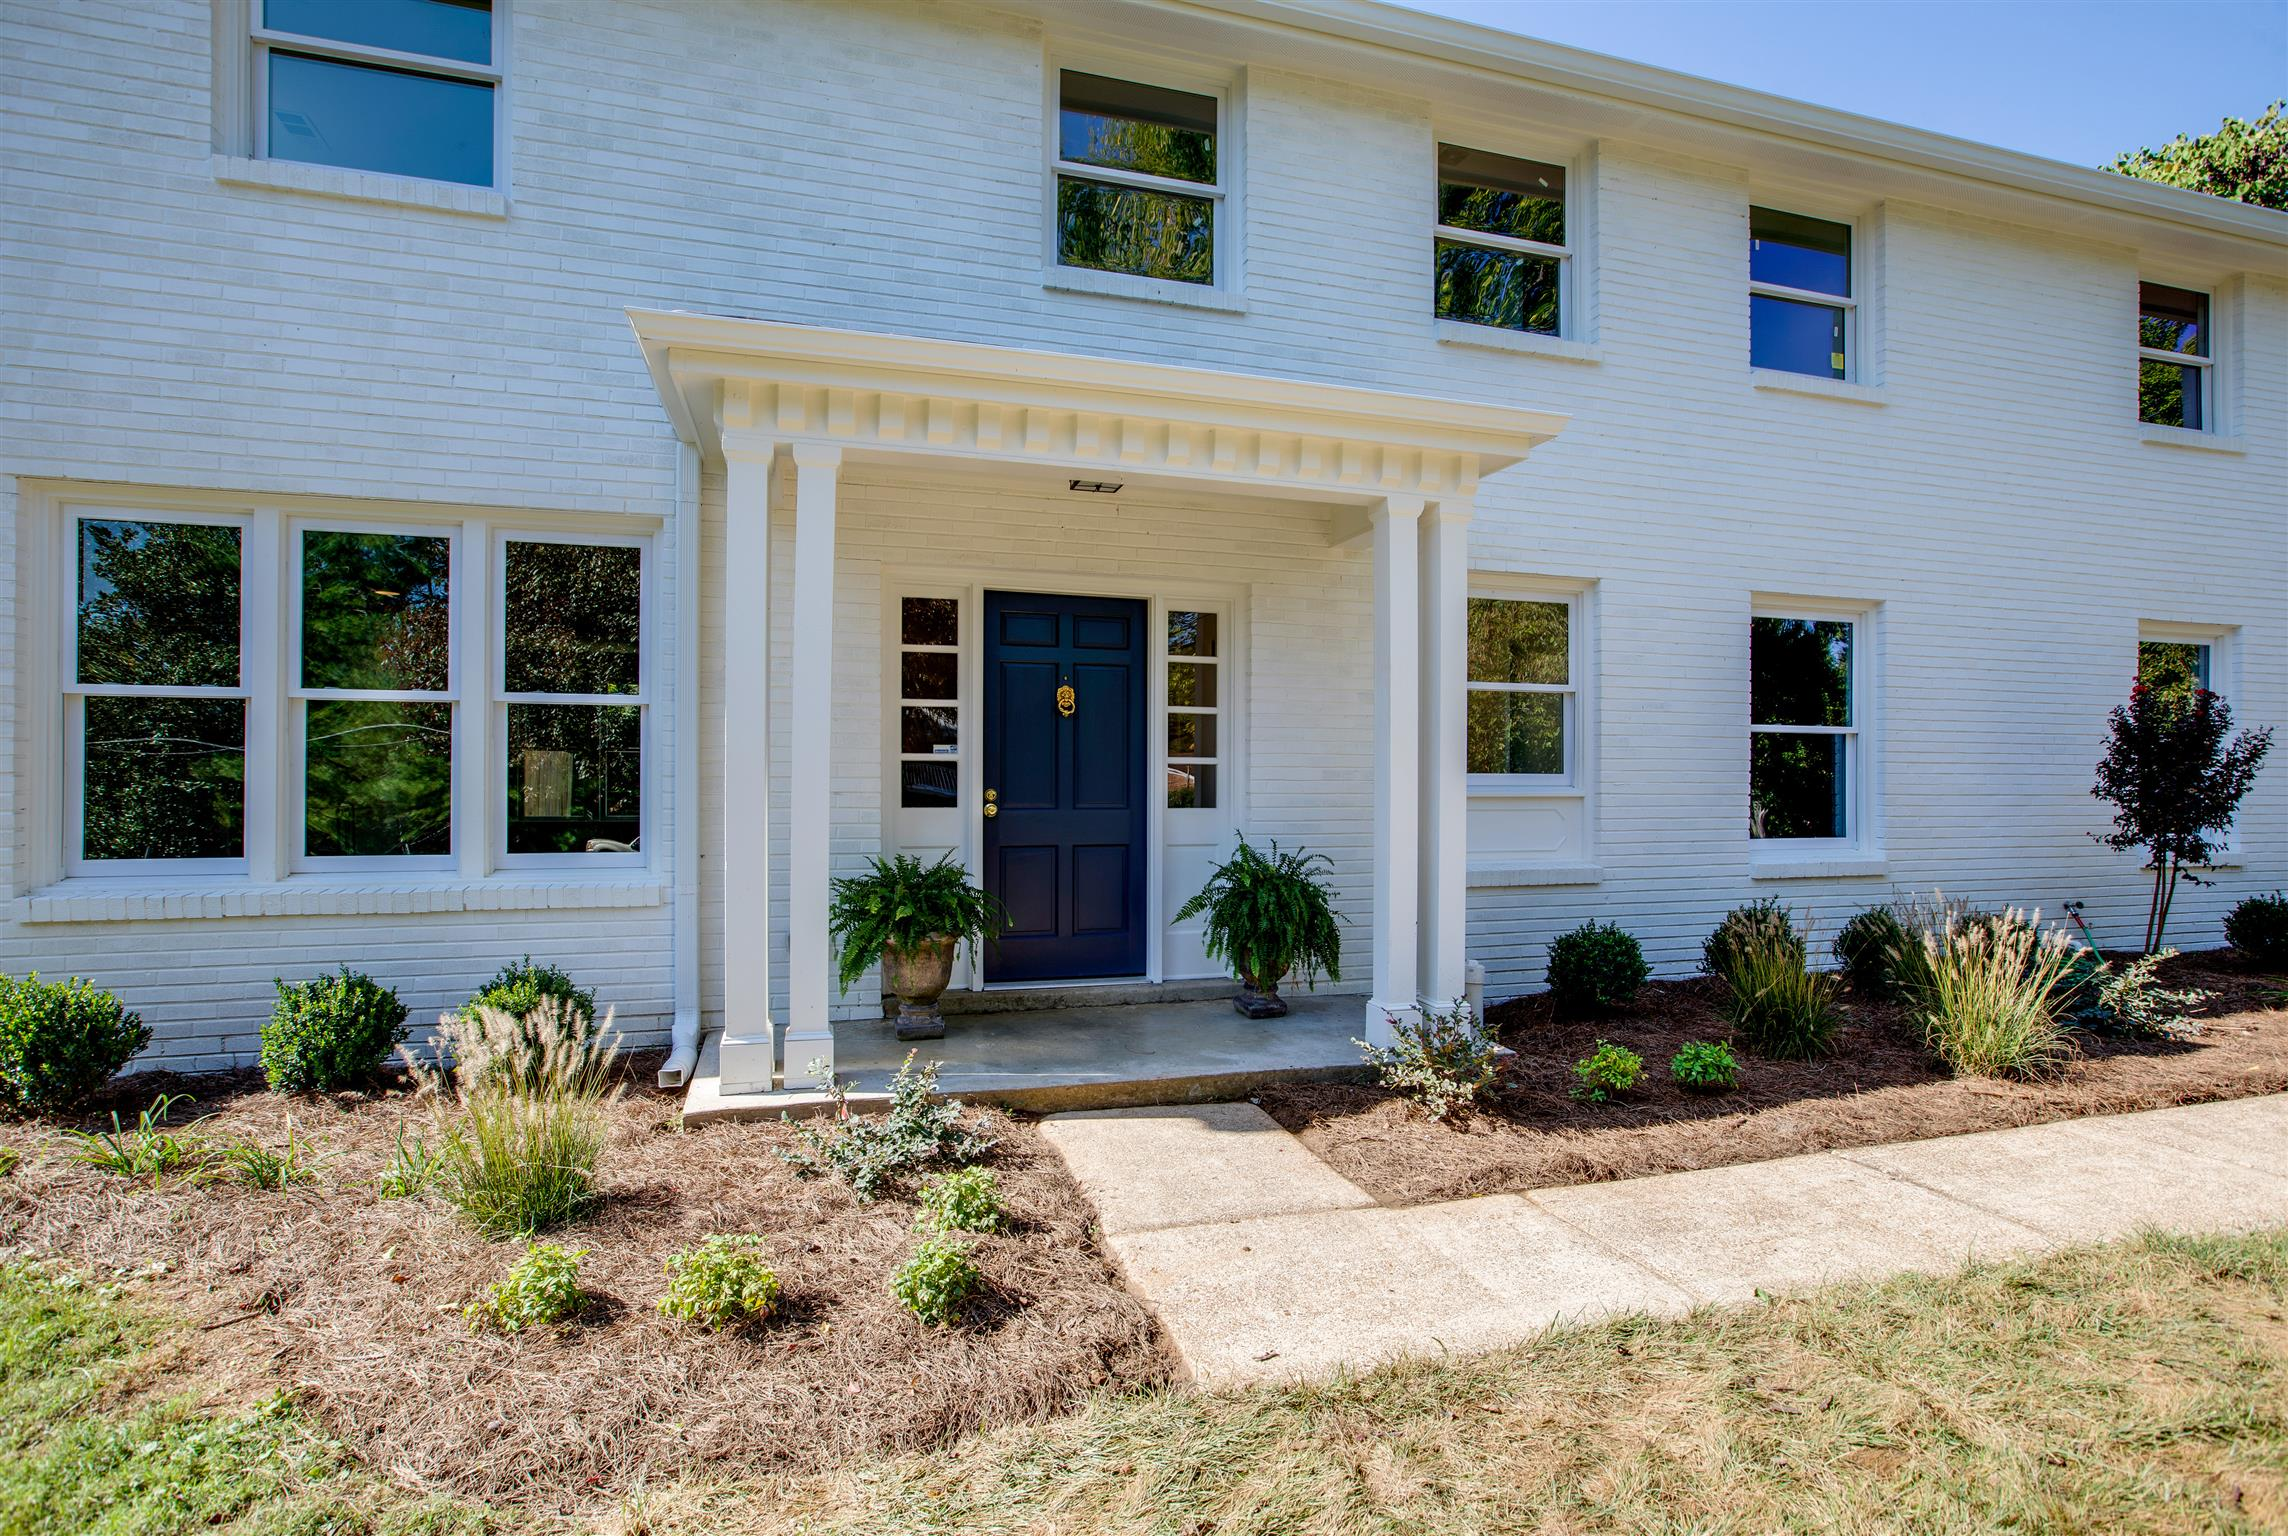 363 Binkley Dr, Crieve Hill, Tennessee 4 Bedroom as one of Homes & Land Real Estate